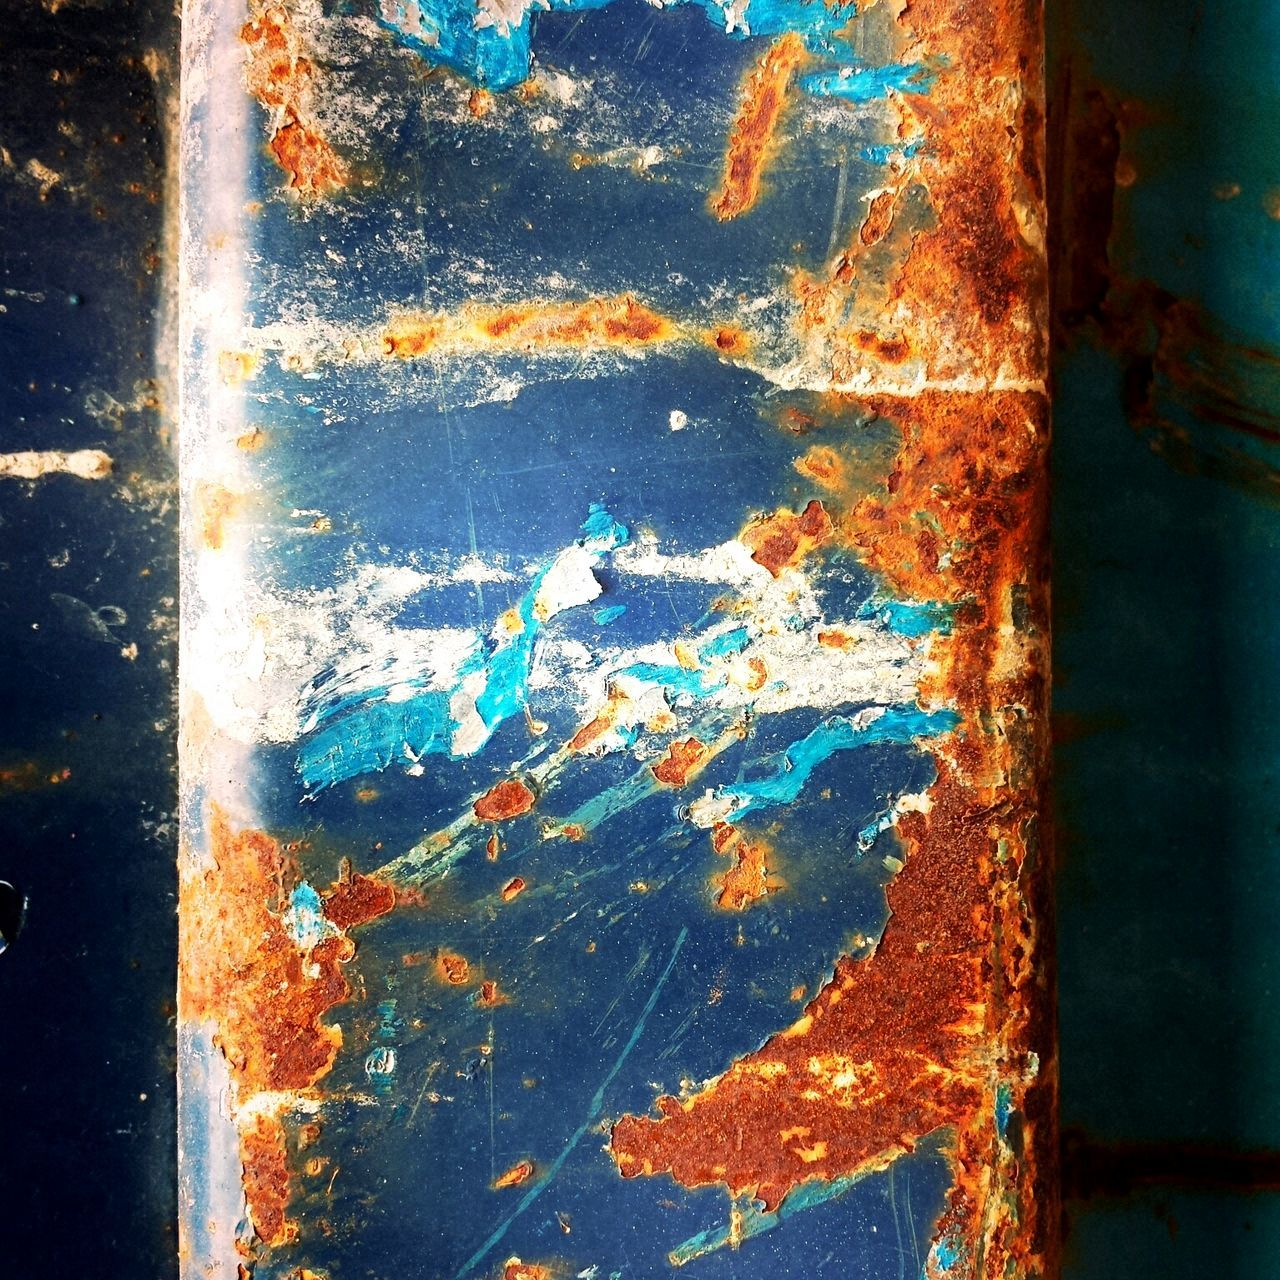 Dumpster Rust Paint Decay Abstract Accidental Art Unintentional Art Accidentalart Unintentionalart